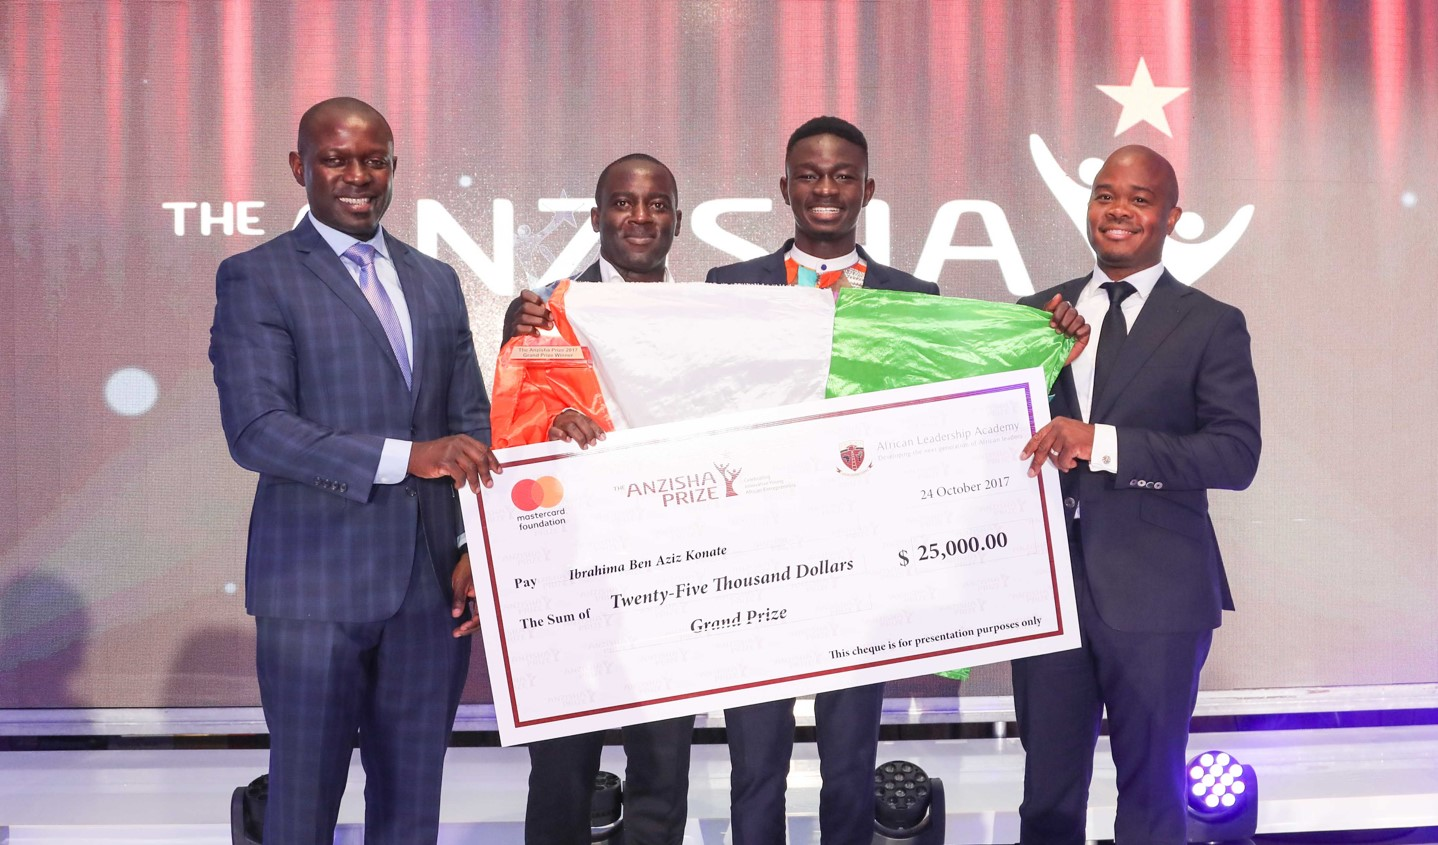 Anzisha Reward 2019 for Young African Business Owners (Win a share of $100,000 and a journey to South Africa)